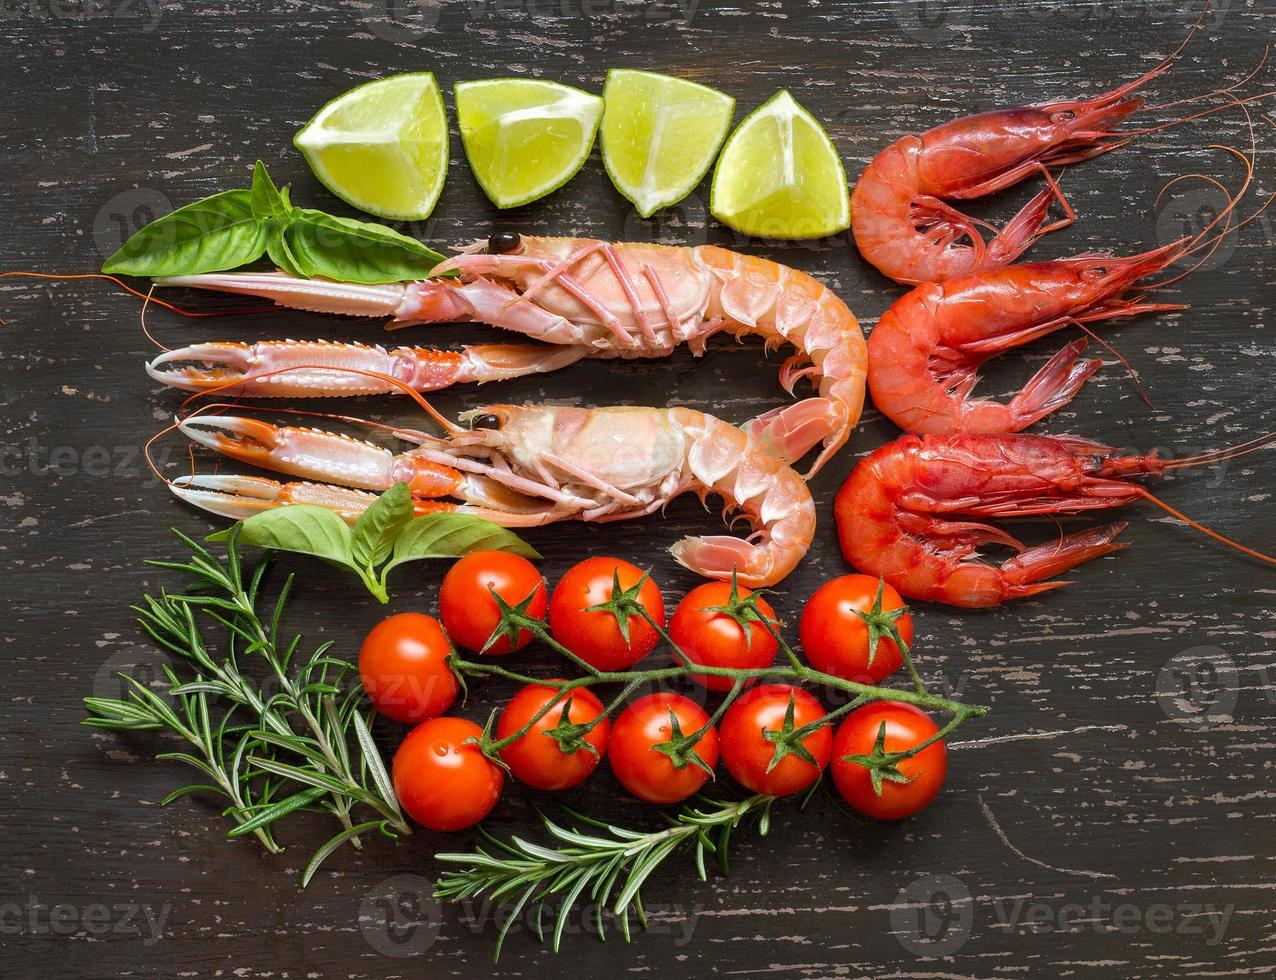 Raw langoustines and shrimps with vegetables photo